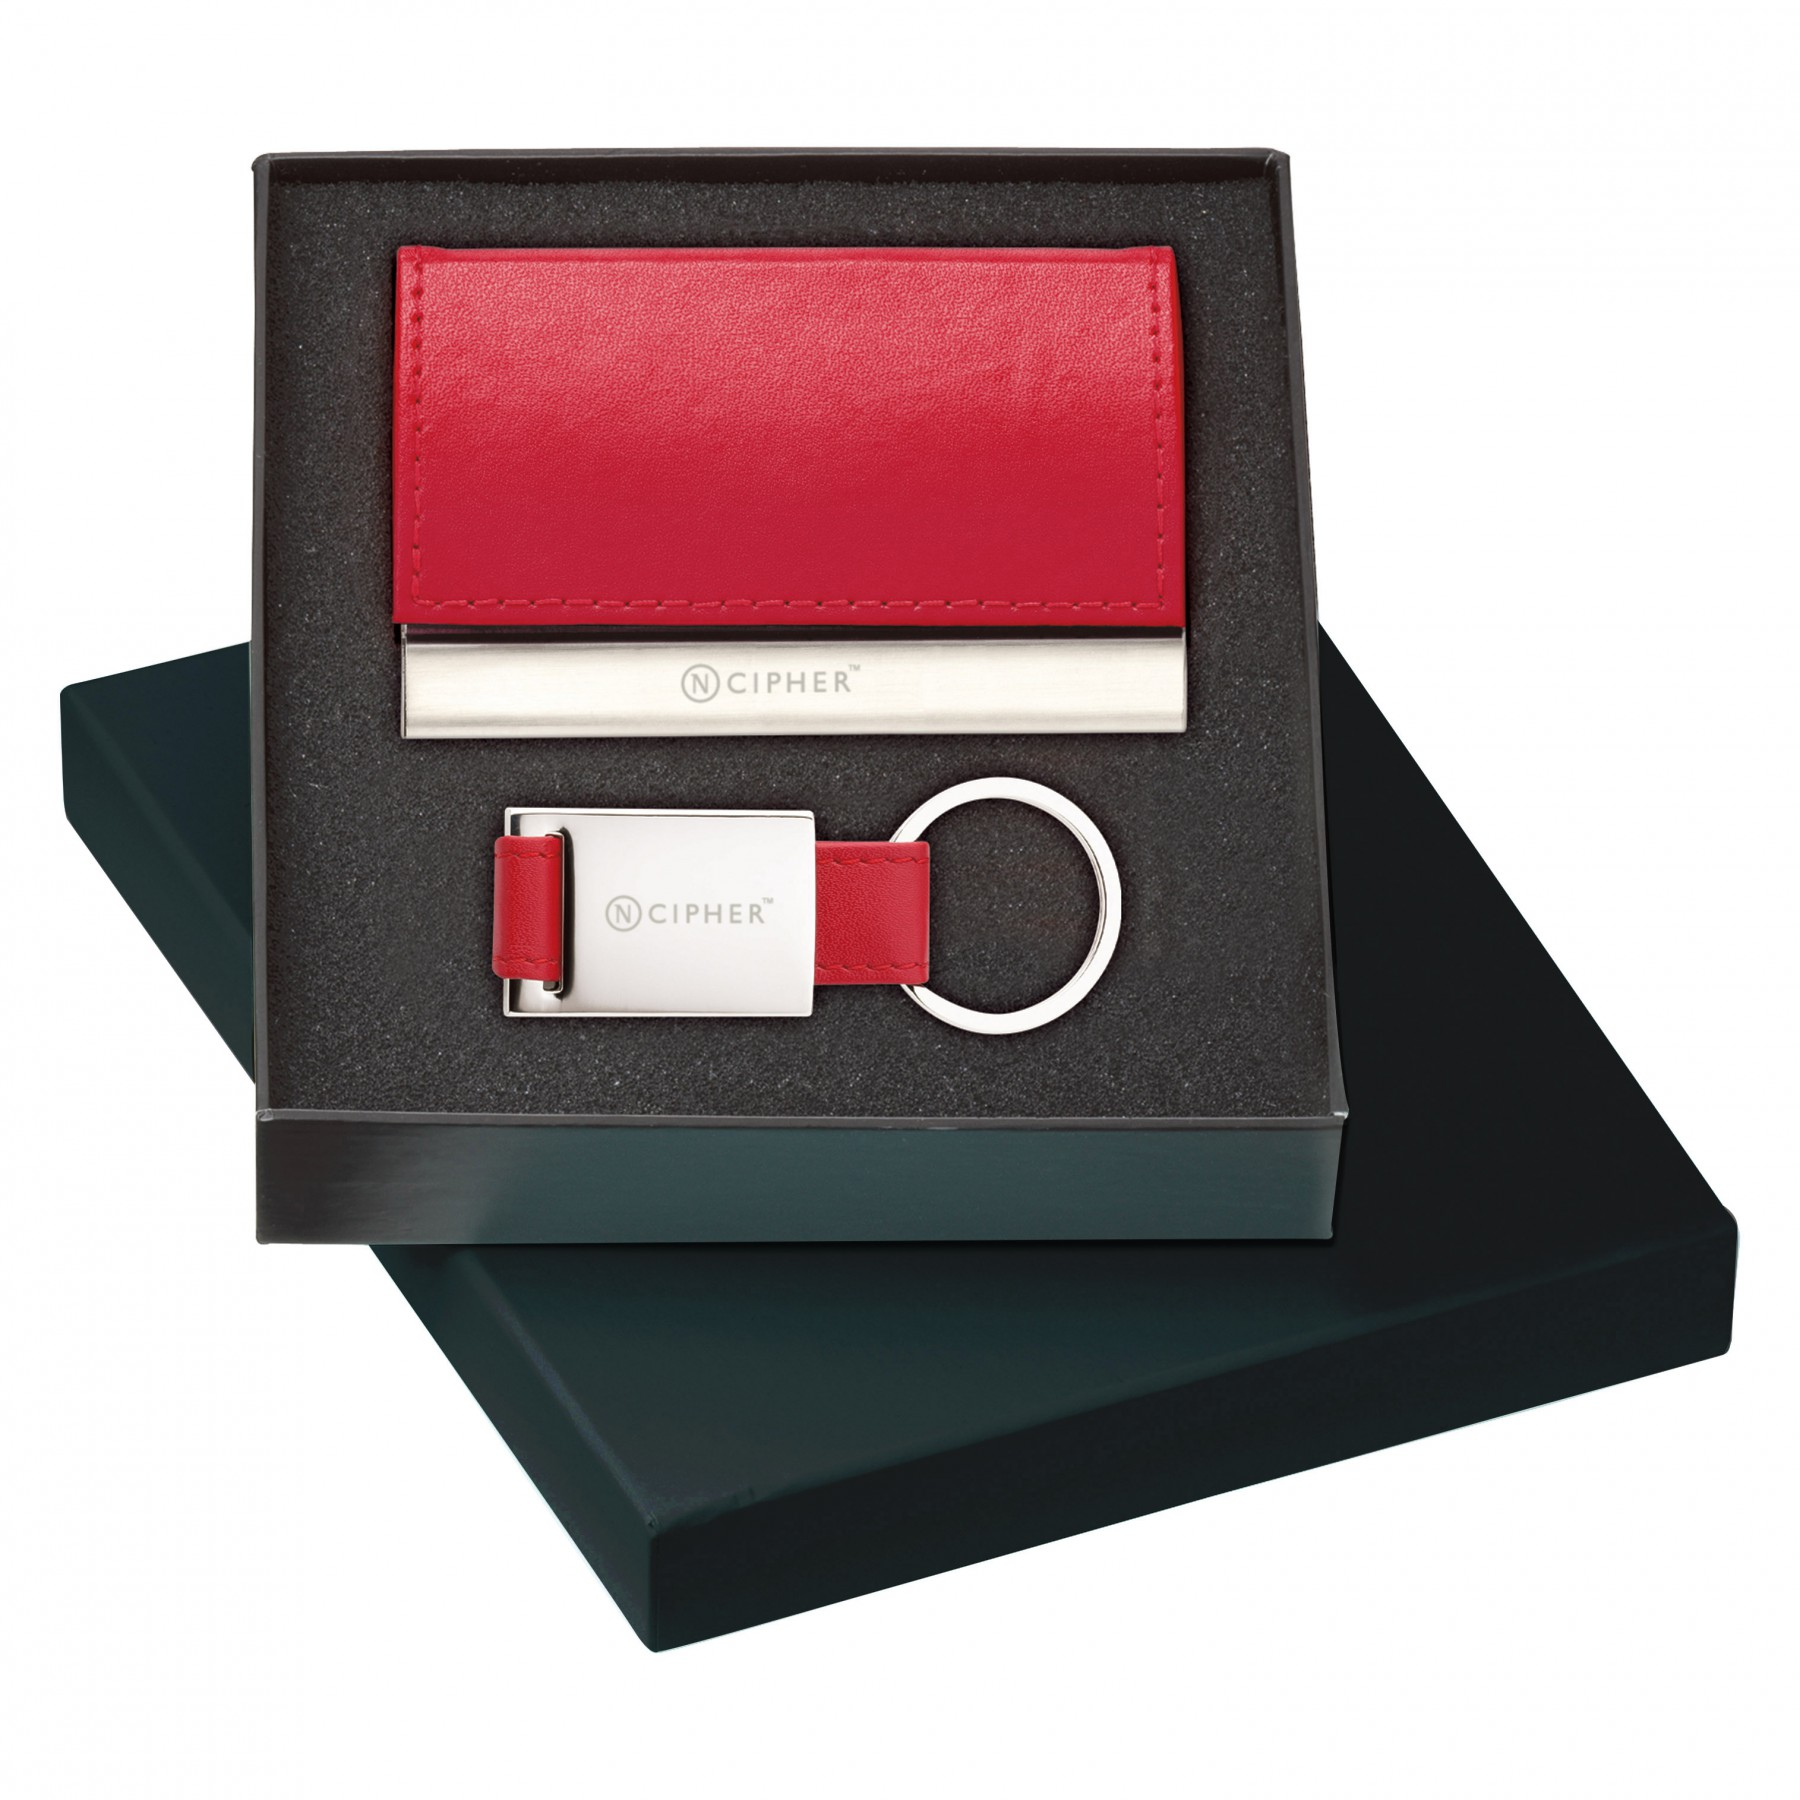 Leather Card Case & Key Ring Gift Set - Laser Engraved (G621)